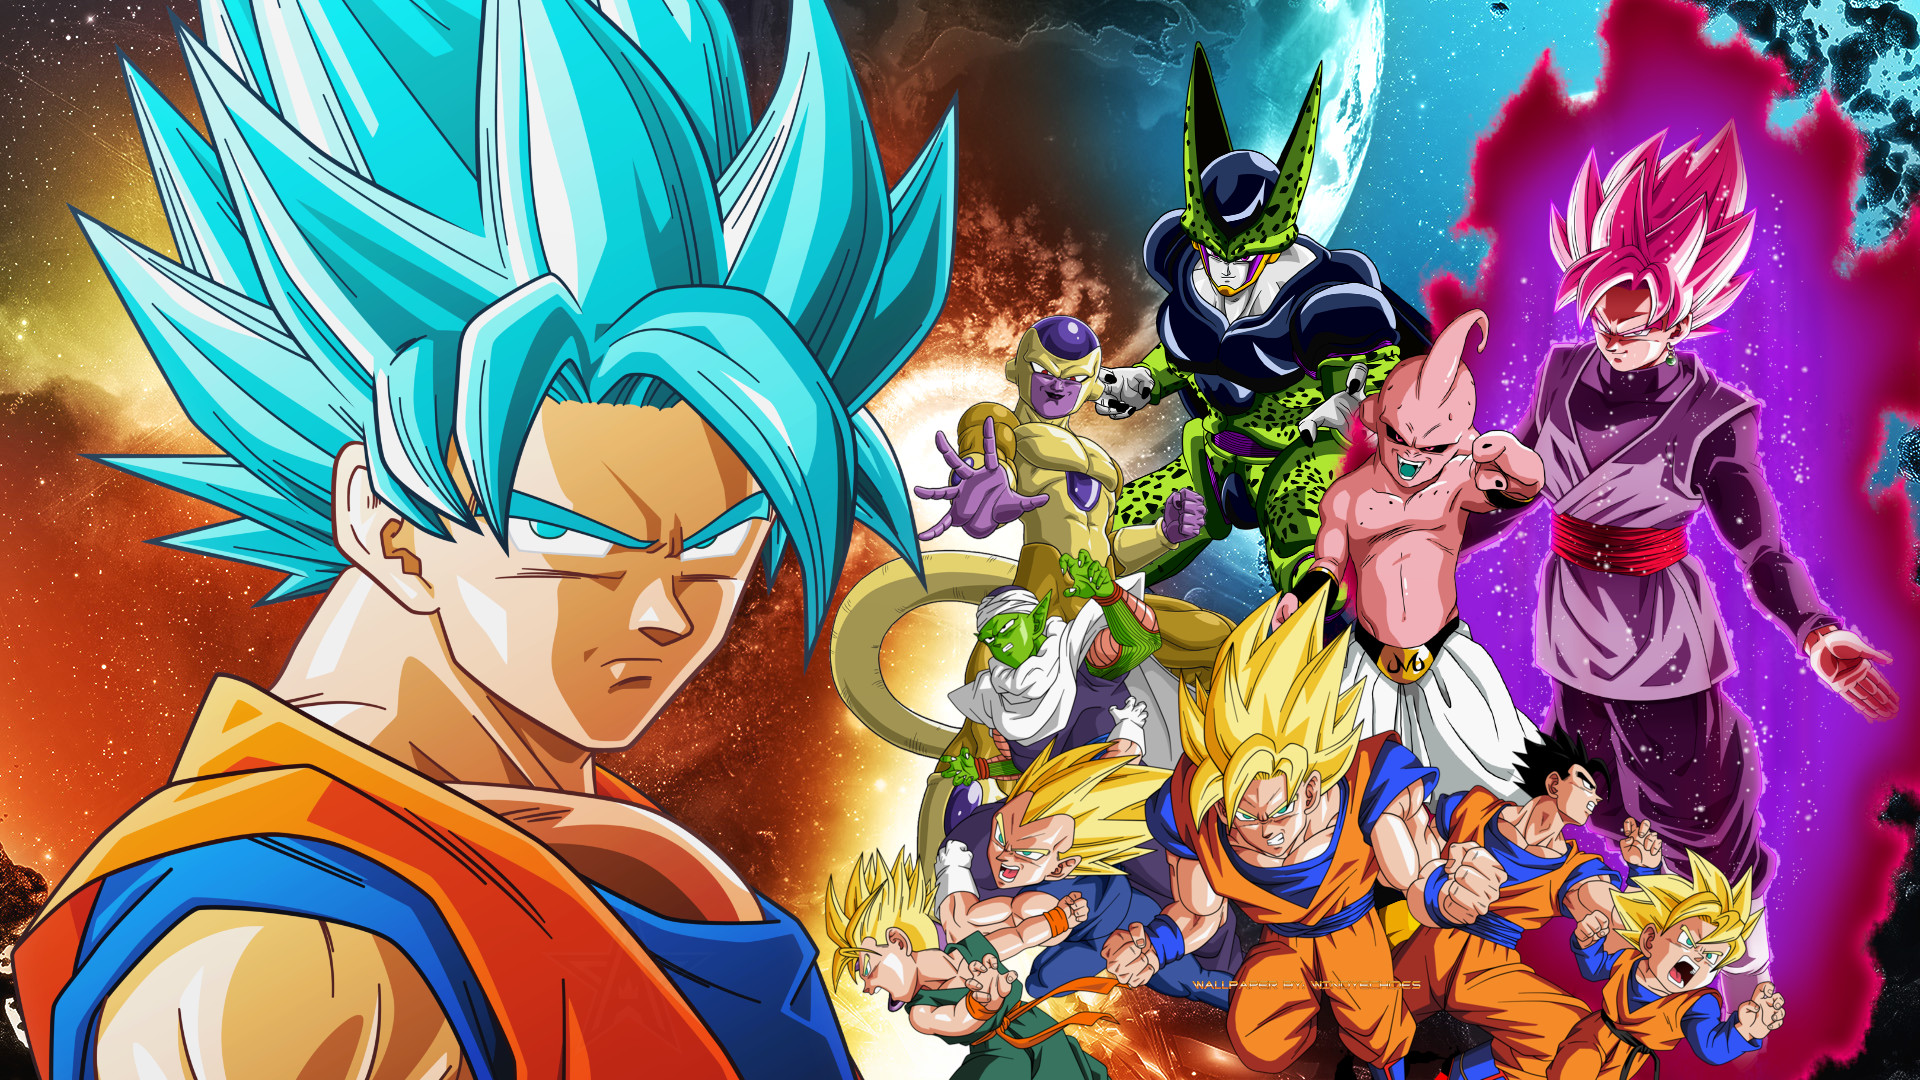 … Dragon Ball Z And Dragon Ball Super Wallpaper by WindyEchoes